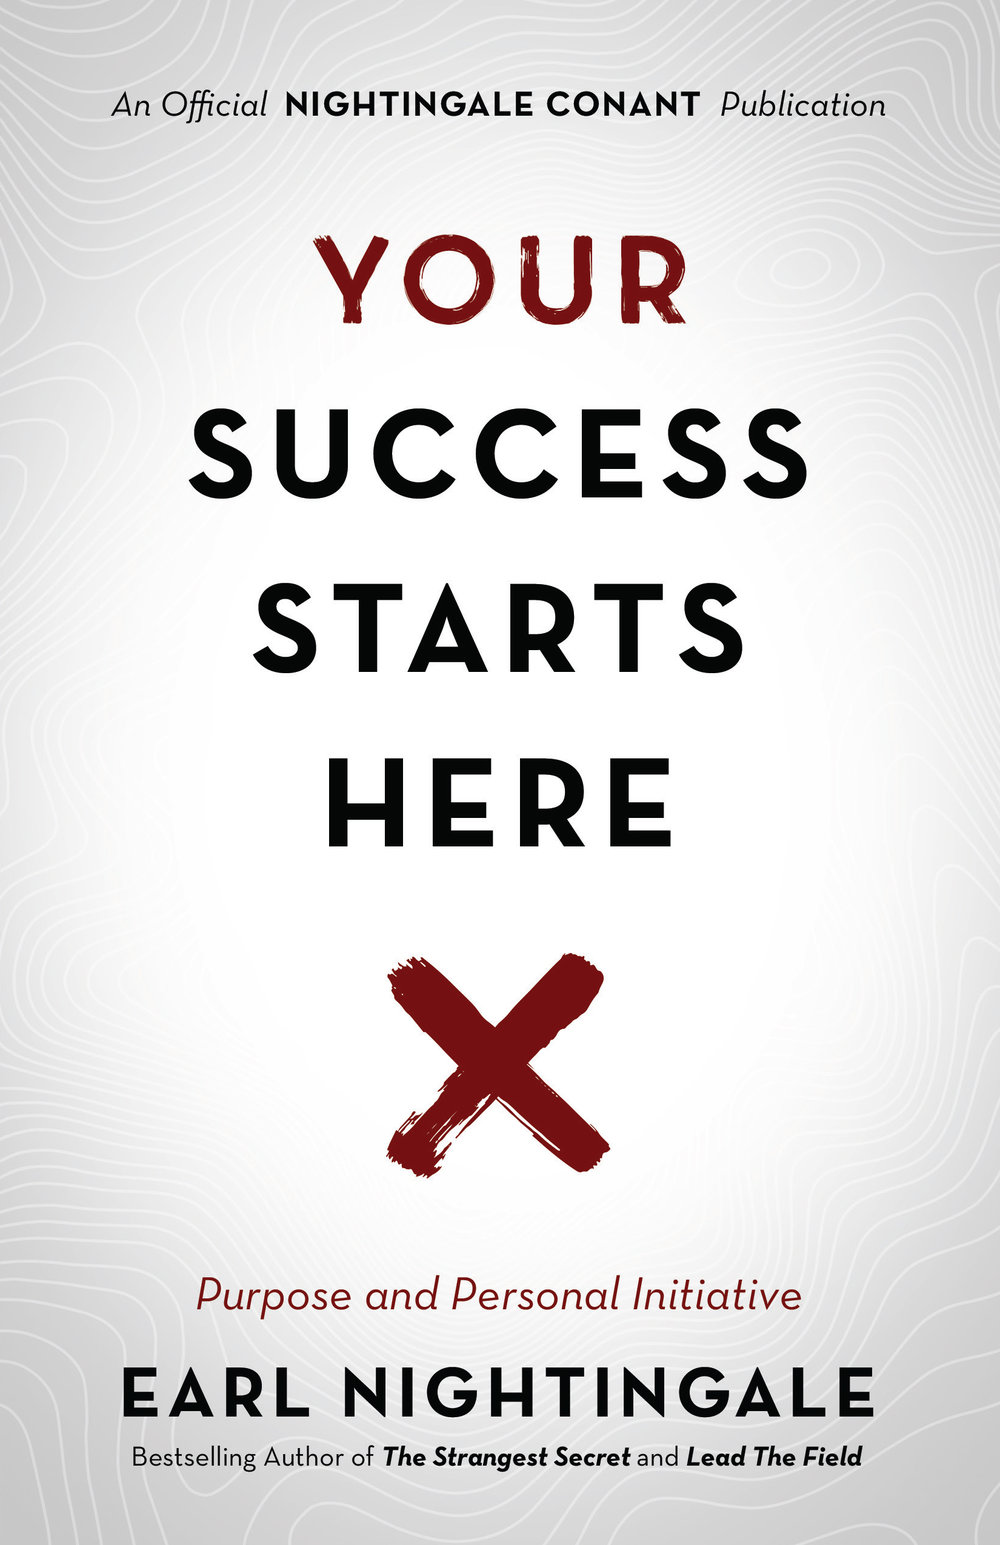 Your Success Starts Here - By Earl Nightingale